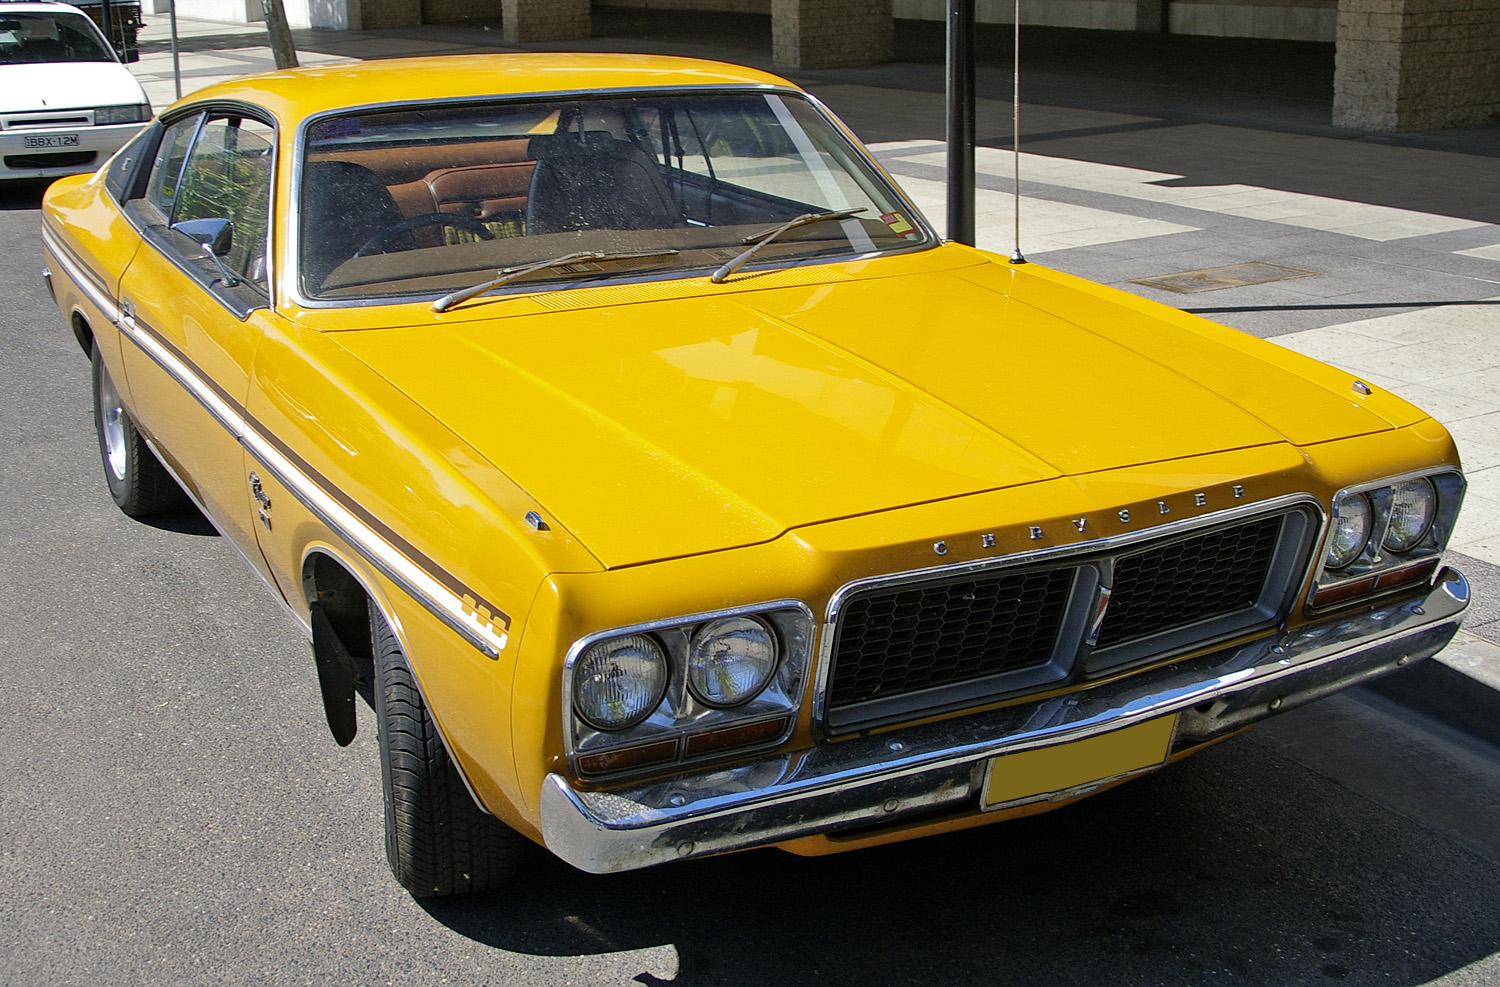 Chrysler Charger #1